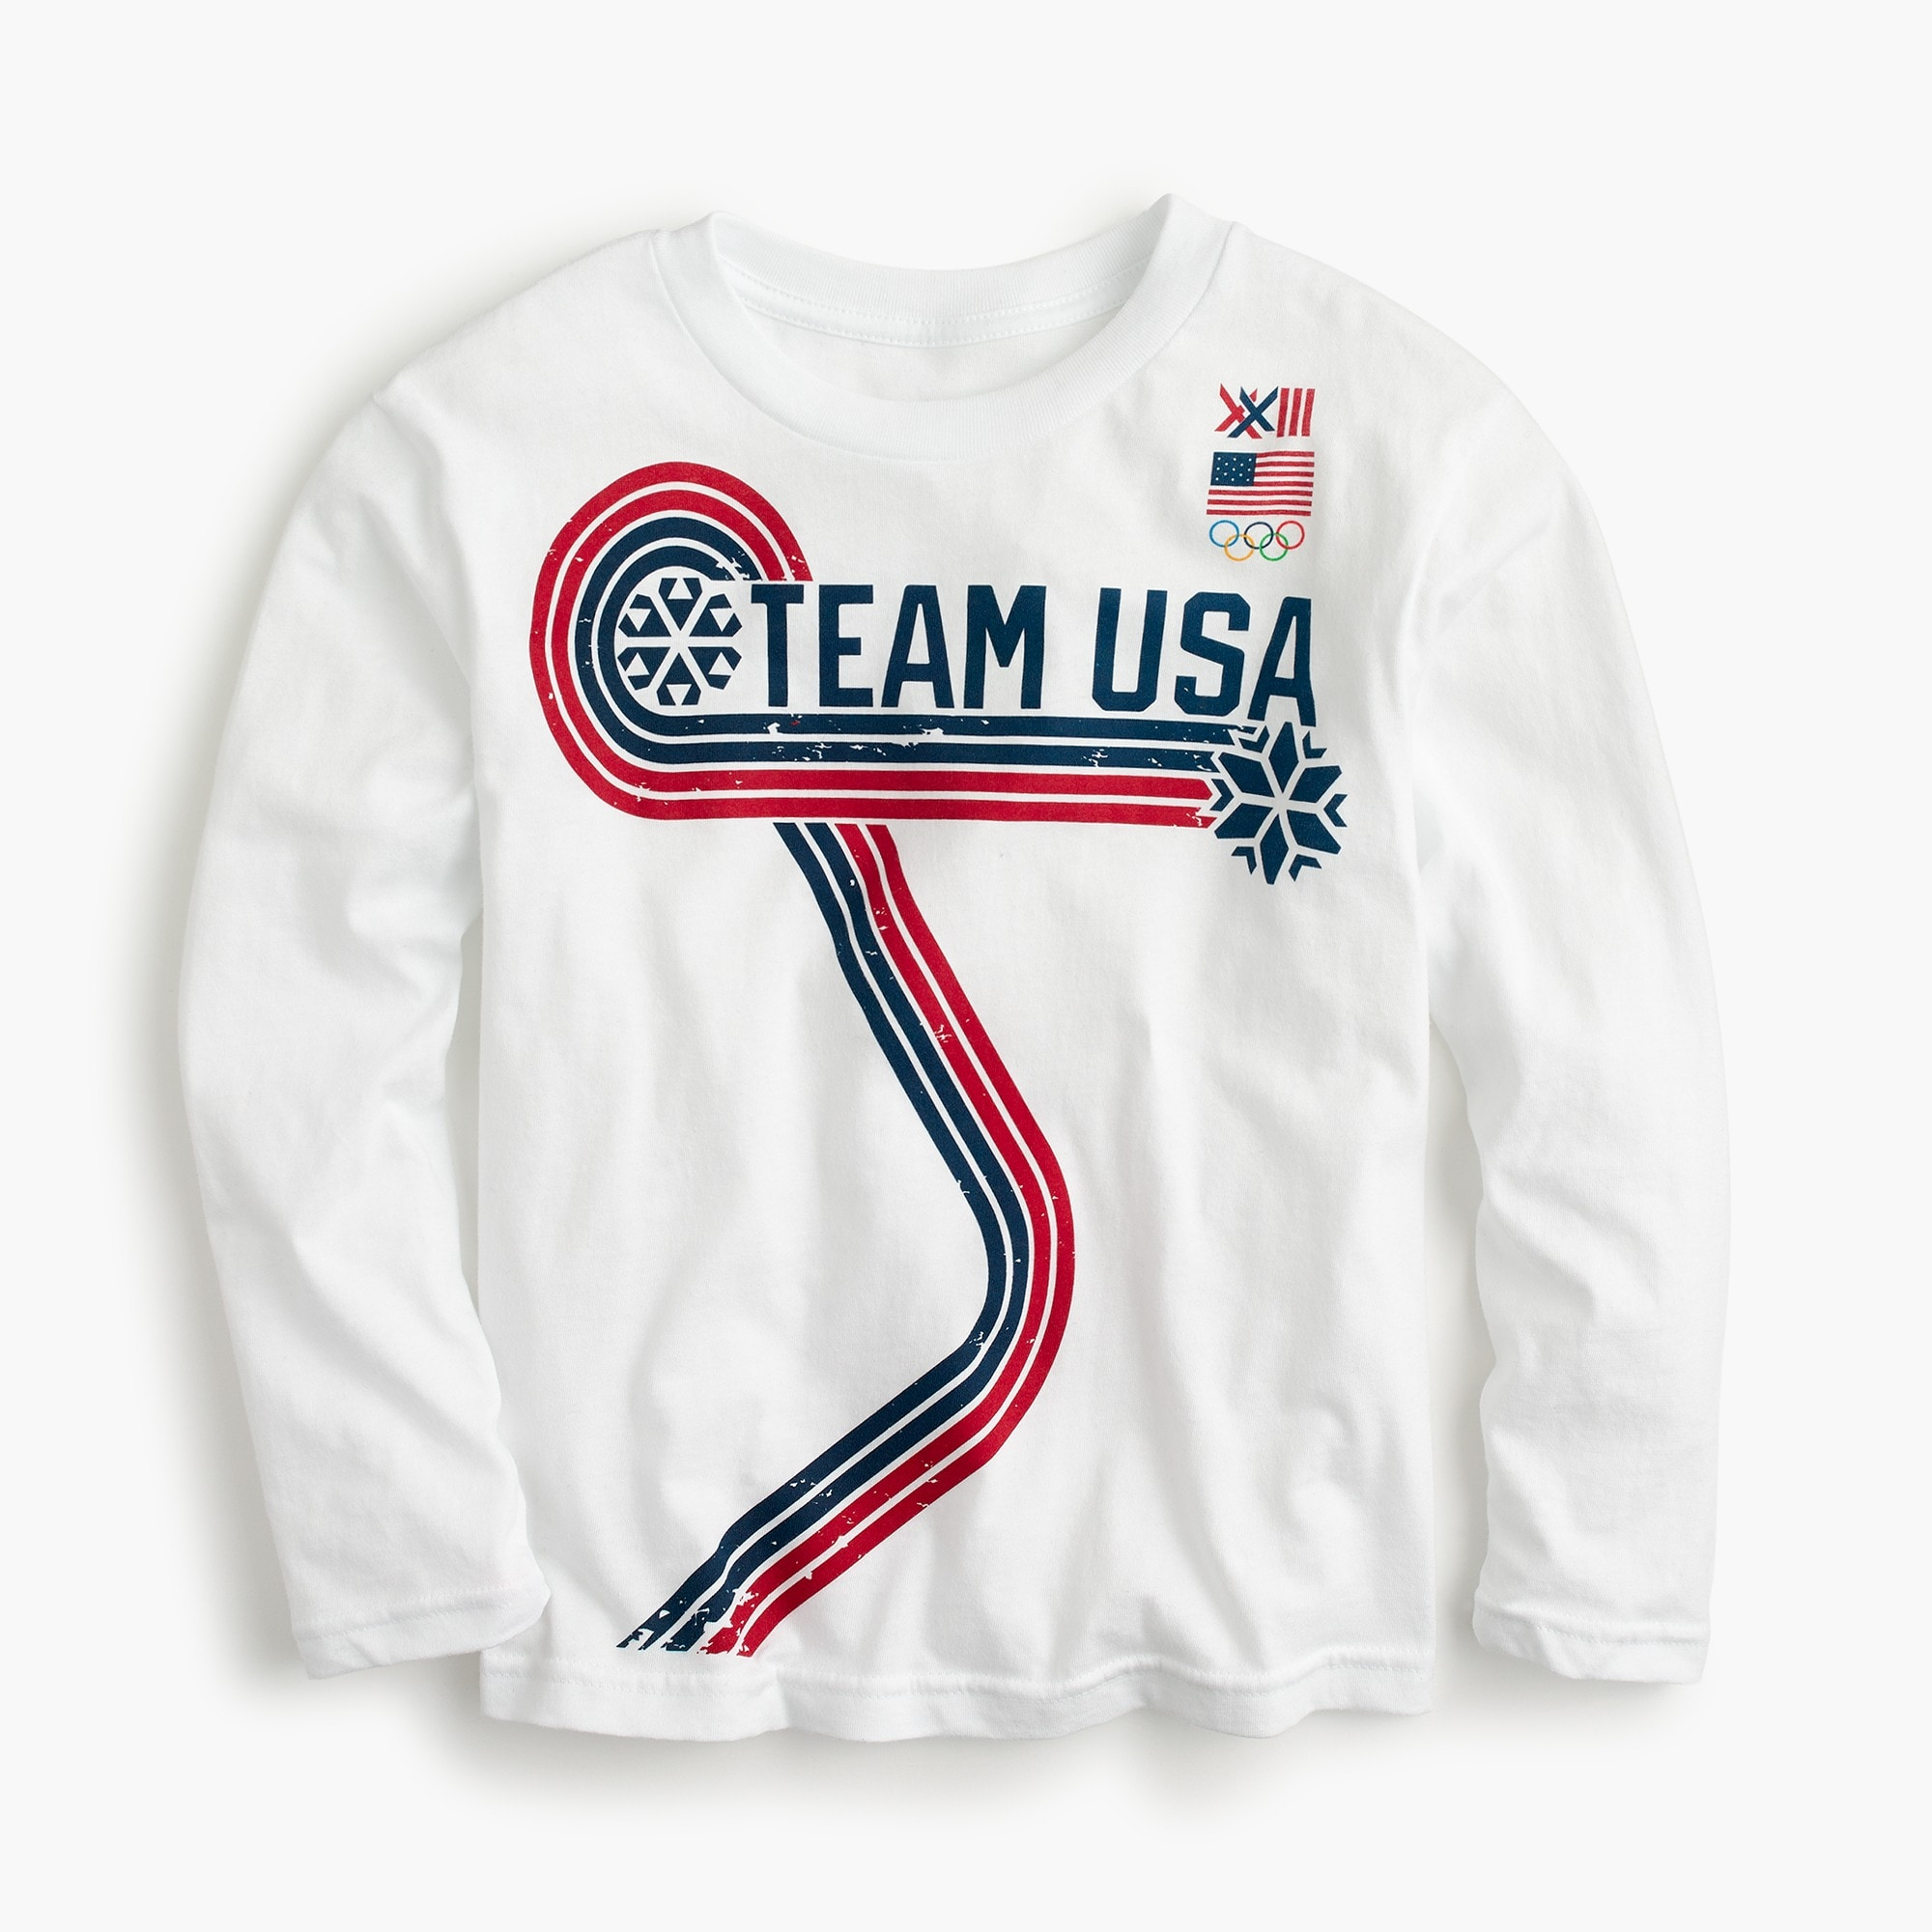 Kids' long-sleeve Team USA T-shirt boy new arrivals c